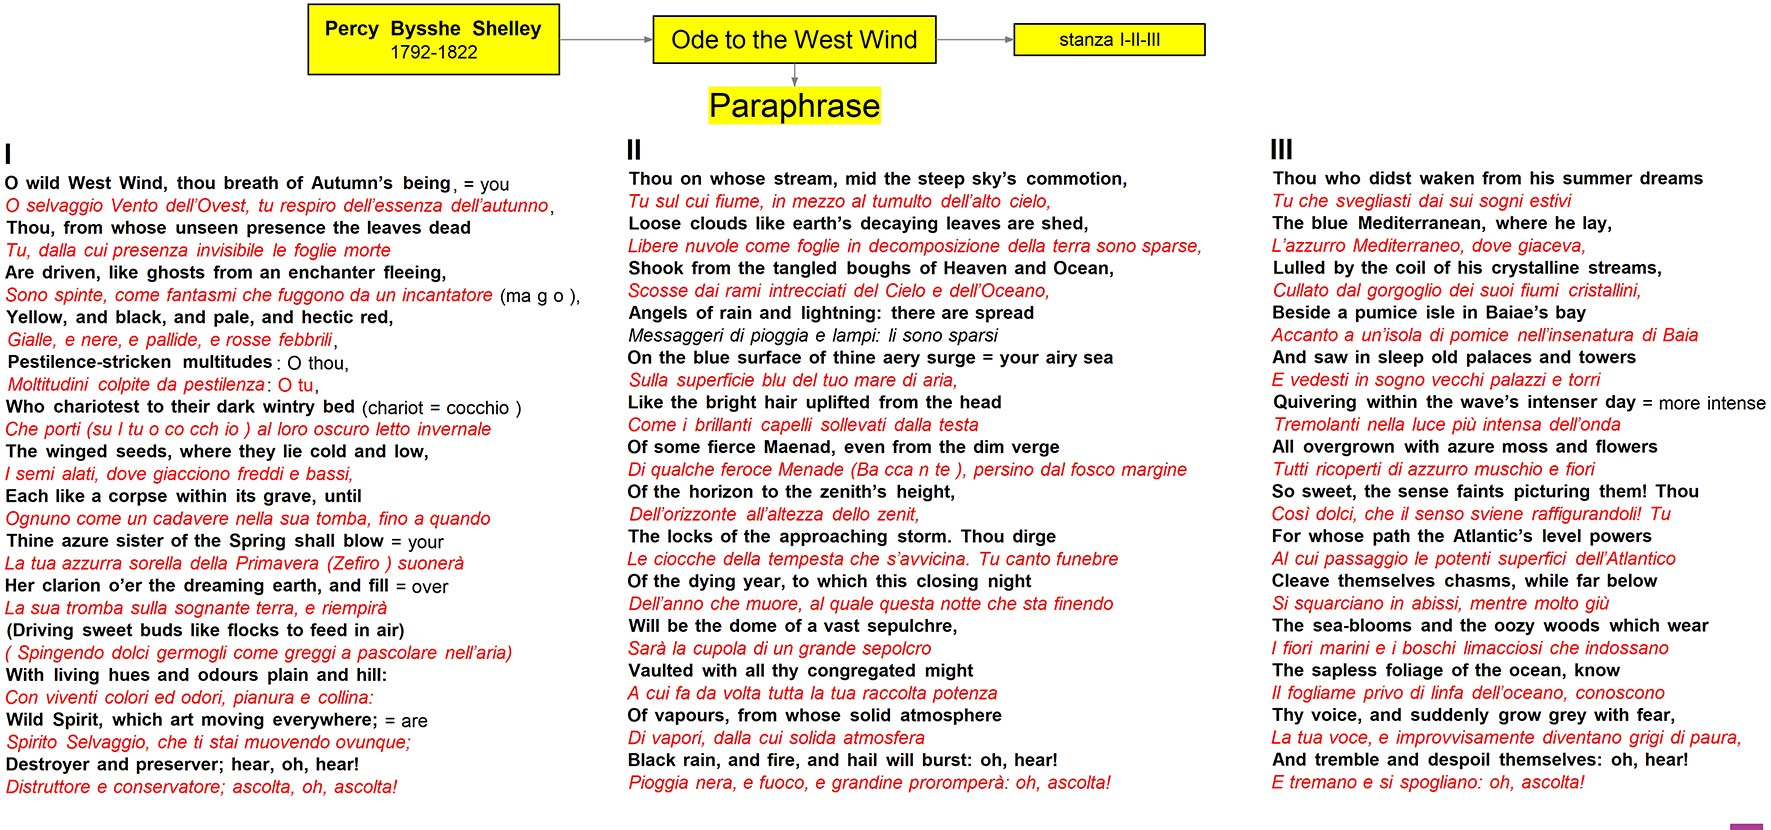 Shelley - Ode to the west wind - paraphrase-I II III stanza